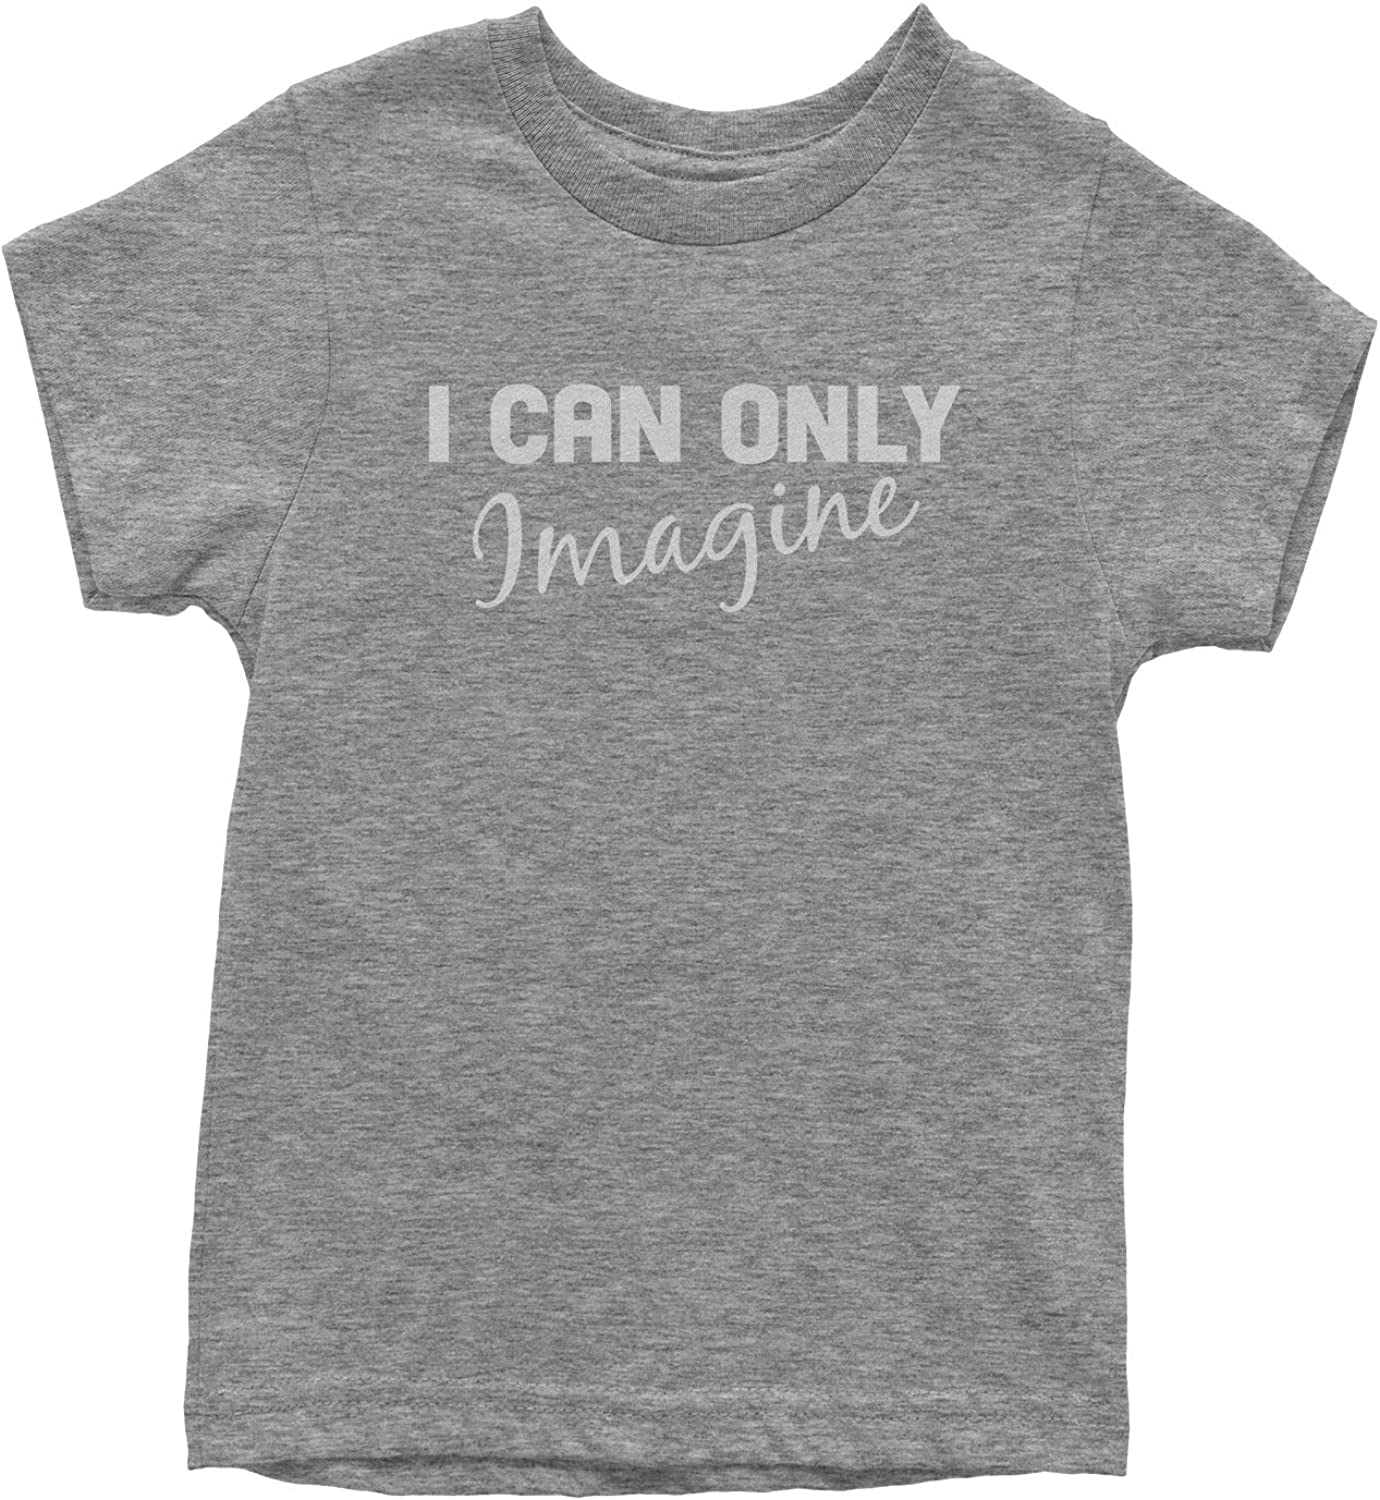 Expression Tees I Can Only Imagine Youth T-Shirt